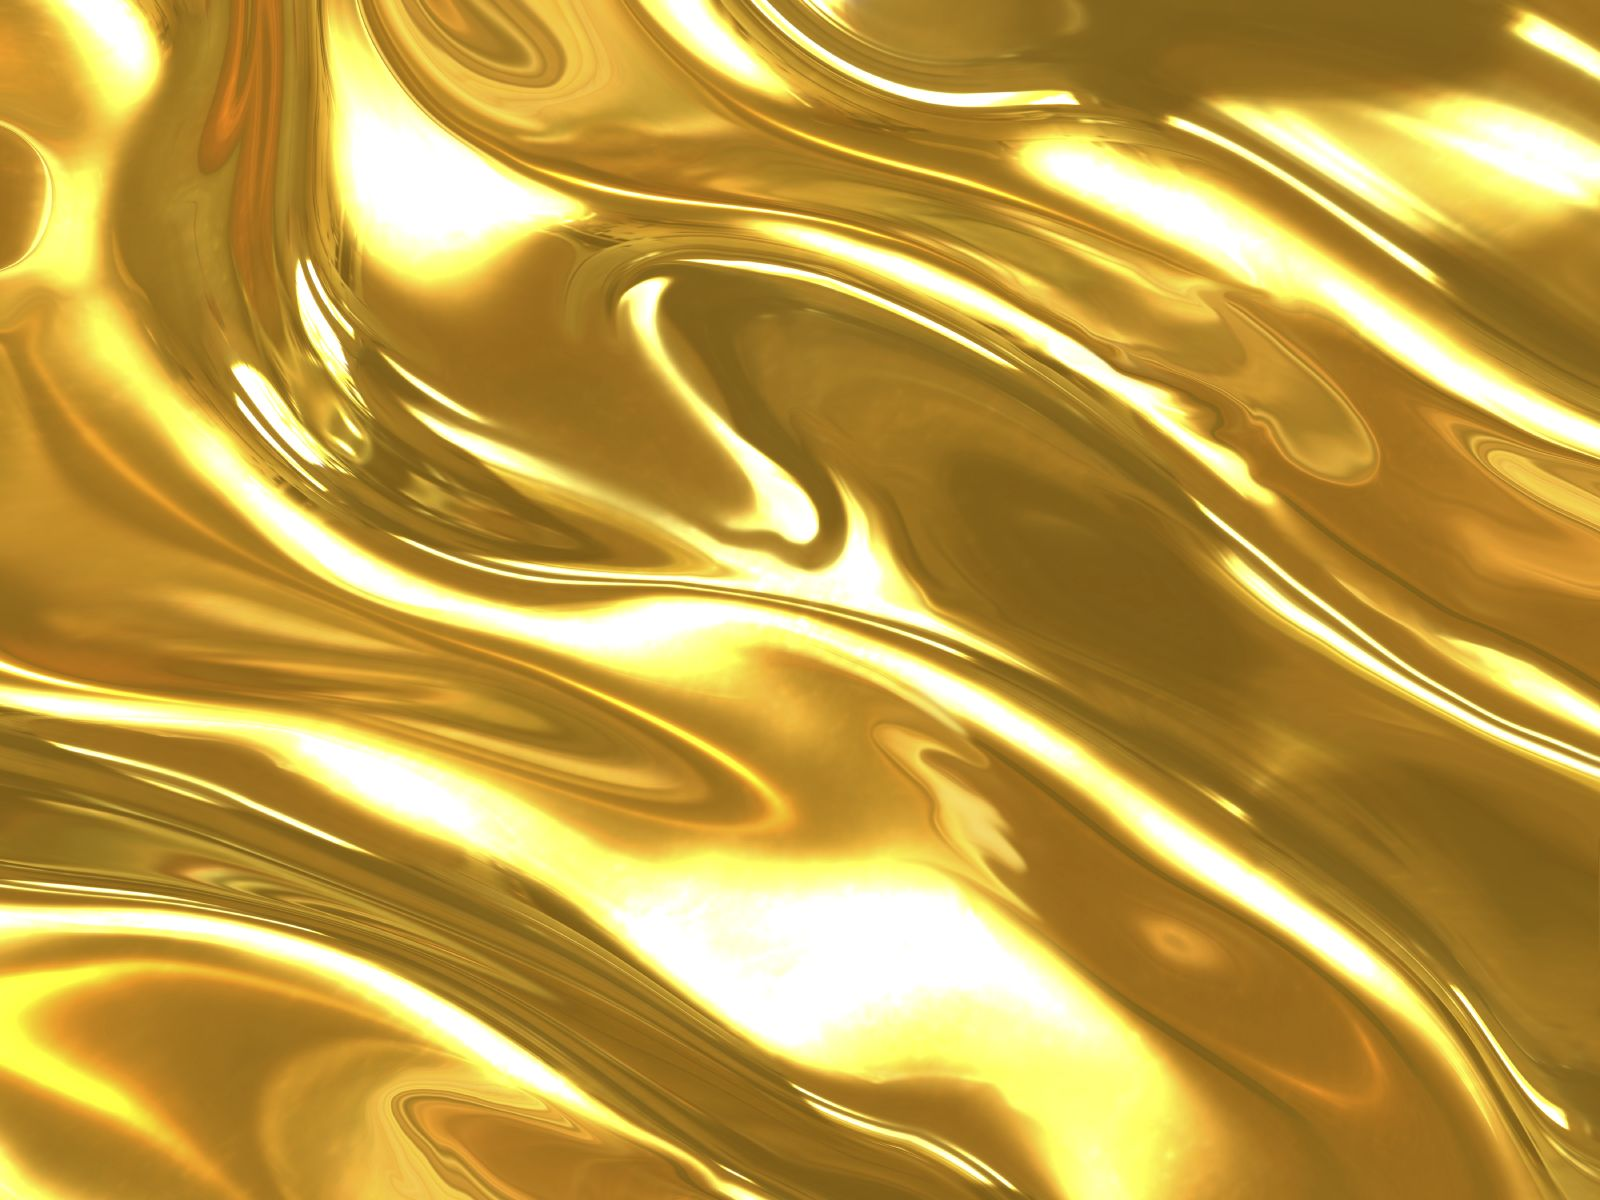 chrome gold car wallpaper - photo #46